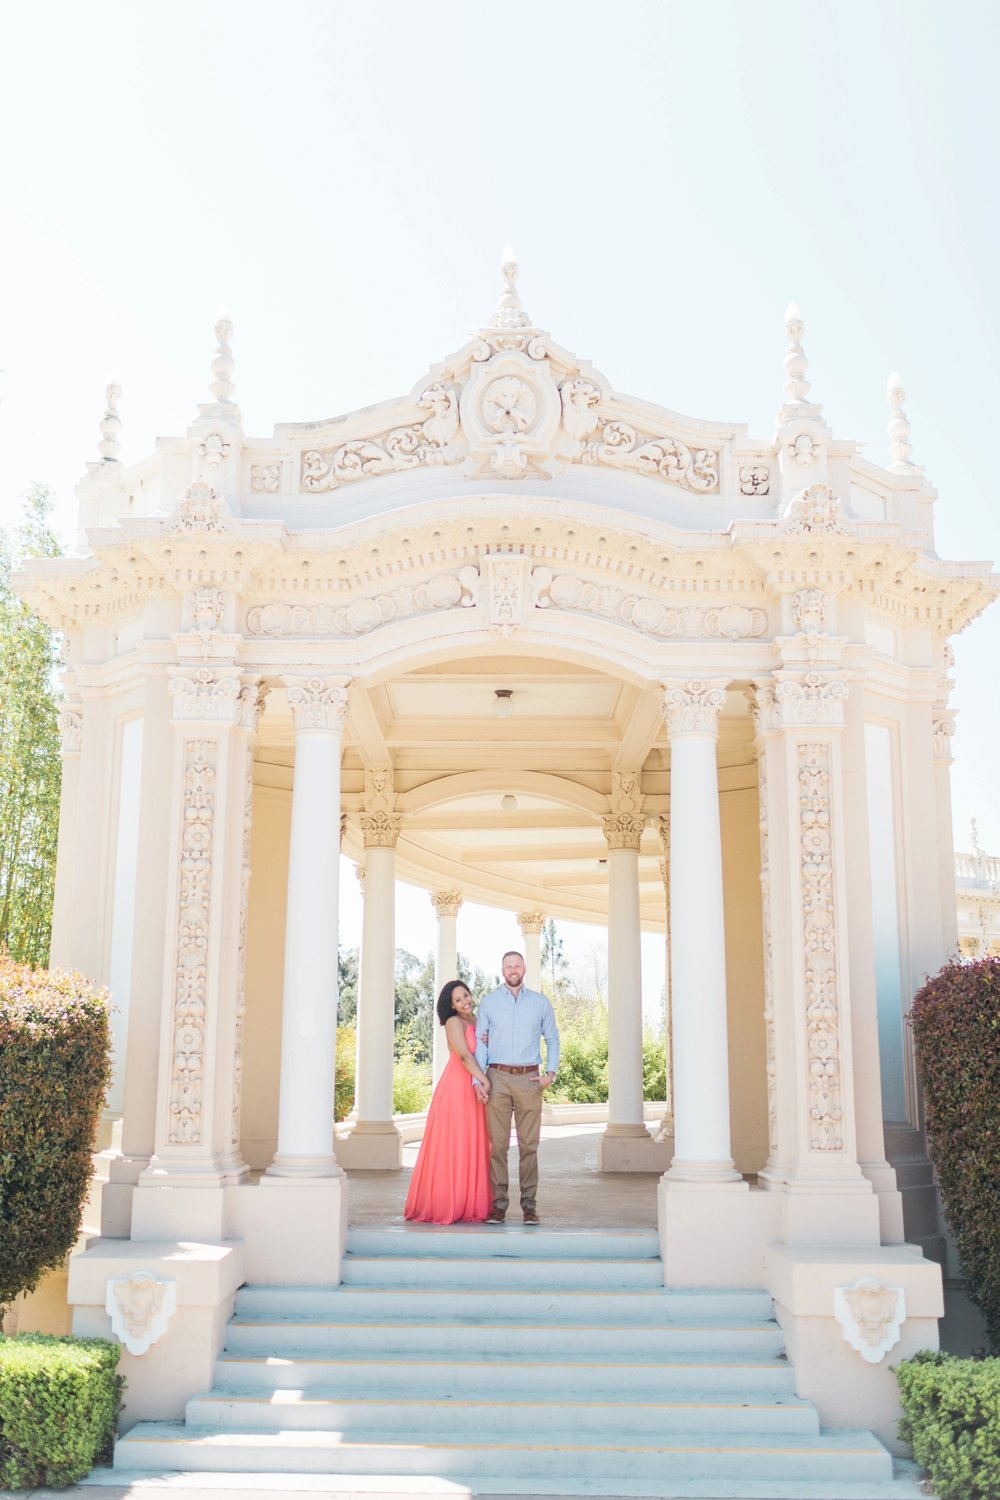 San-Diego-California-Beautiful-Film-Engagement-Wedding-Photographer-Balboa-Park-Sunset-Cliffs-Wedding-Photos_5185.jpg